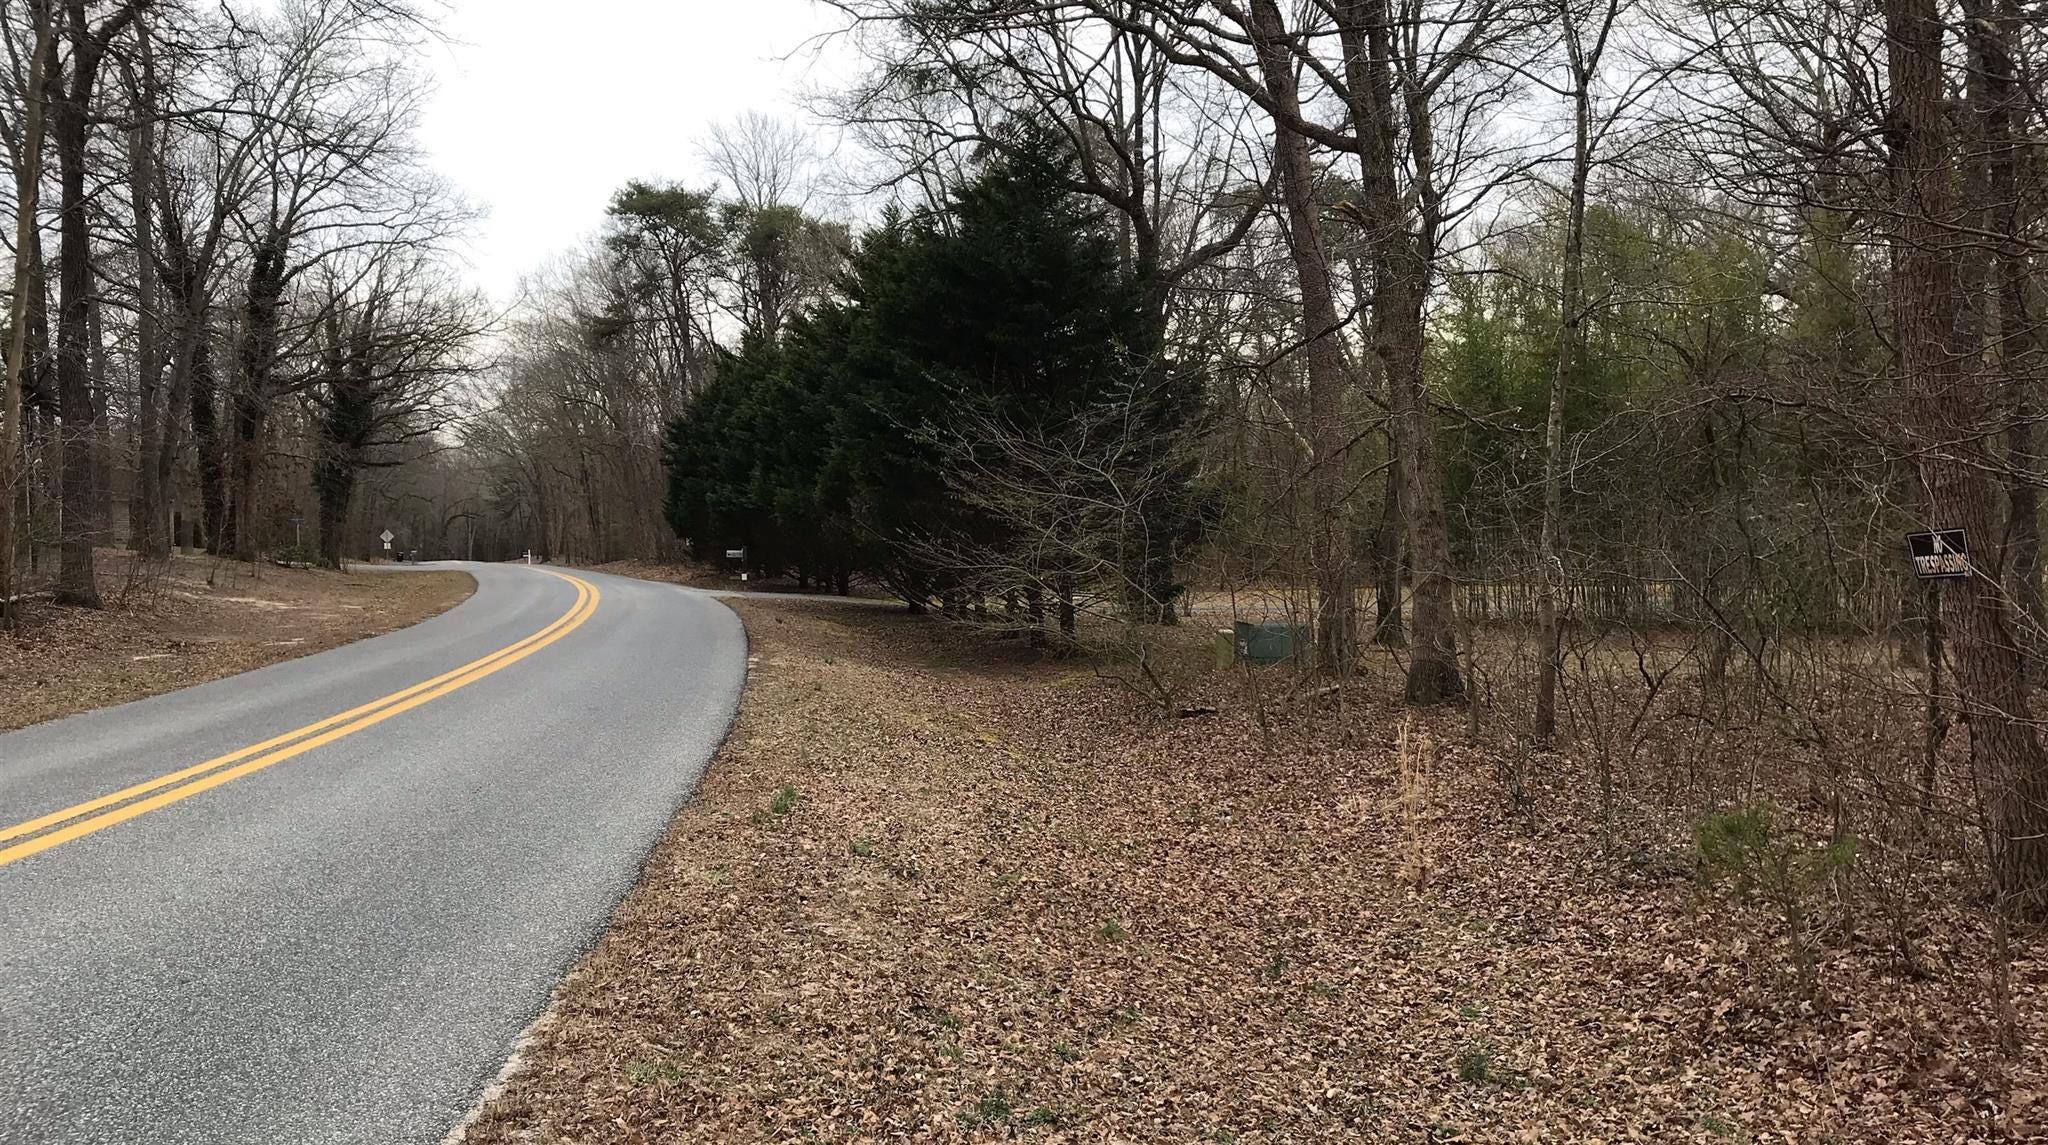 'People are scared': Delaware neighborhood on edge after woman's dismembered body found